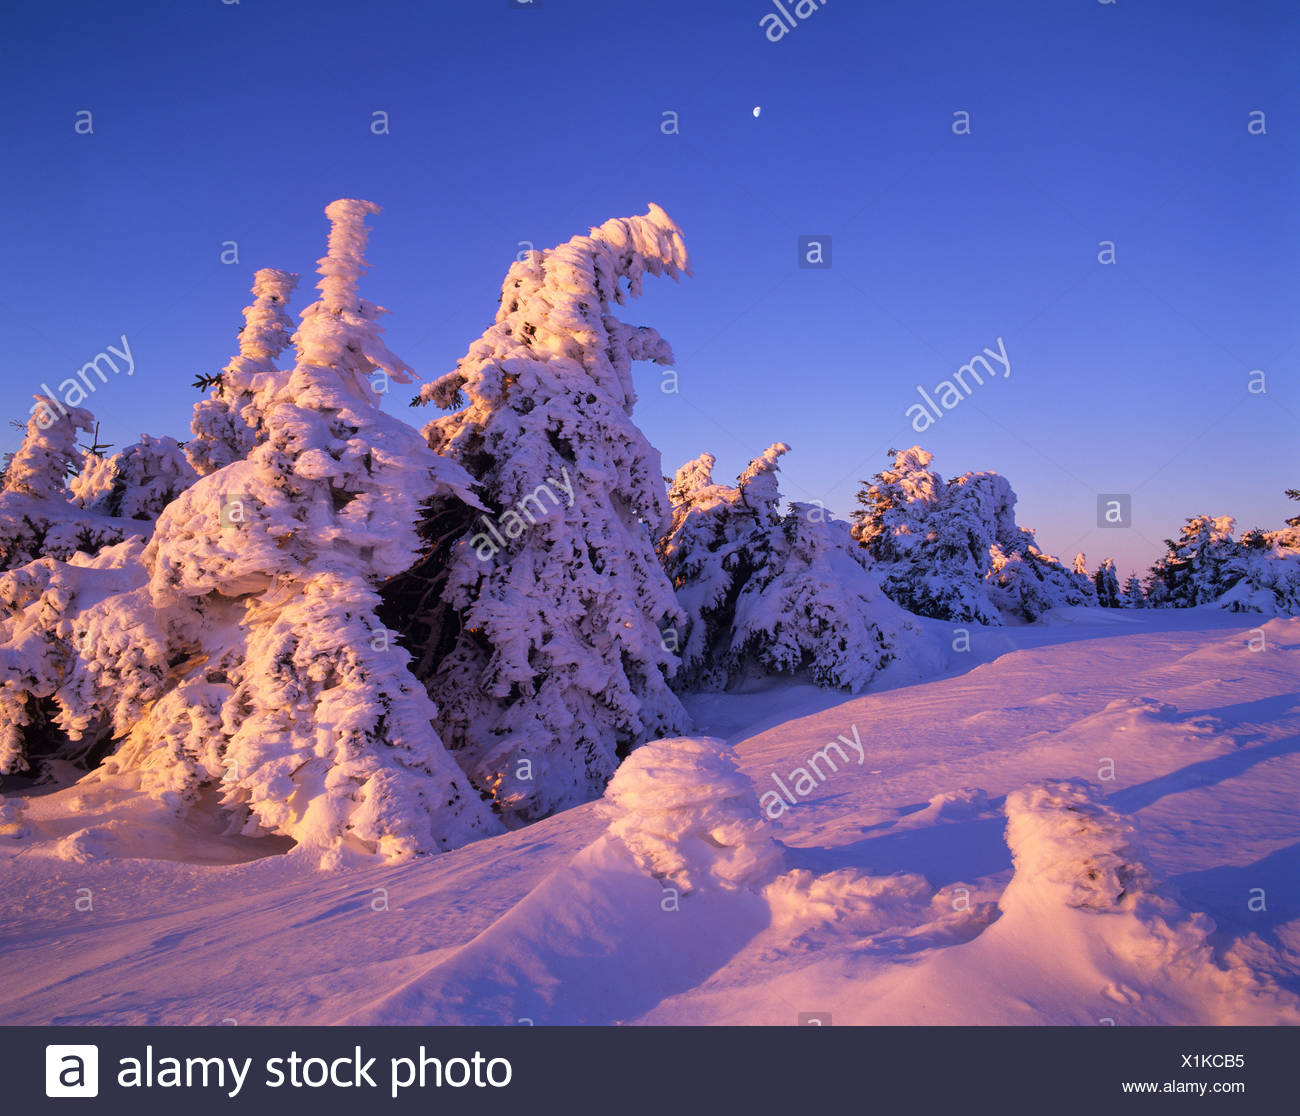 Snow-covered spruce trees on Brocken Mountain at sunset with the moon in the sky, Brocken, Harz National Park, Saxony-Anhalt - Stock Image